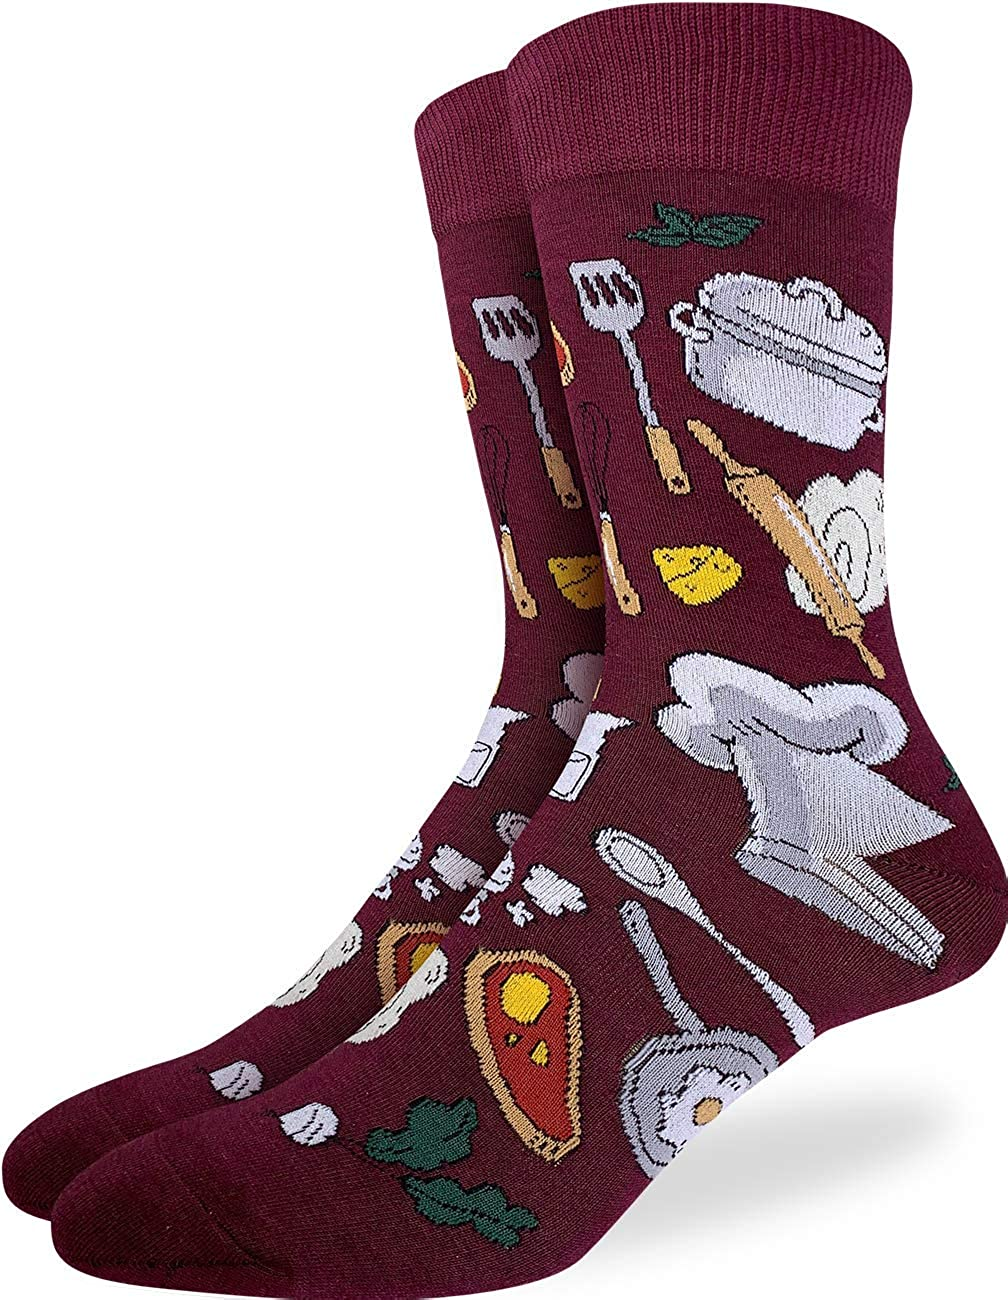 Wedding Socks for all the Party Page Boy on Red Socks